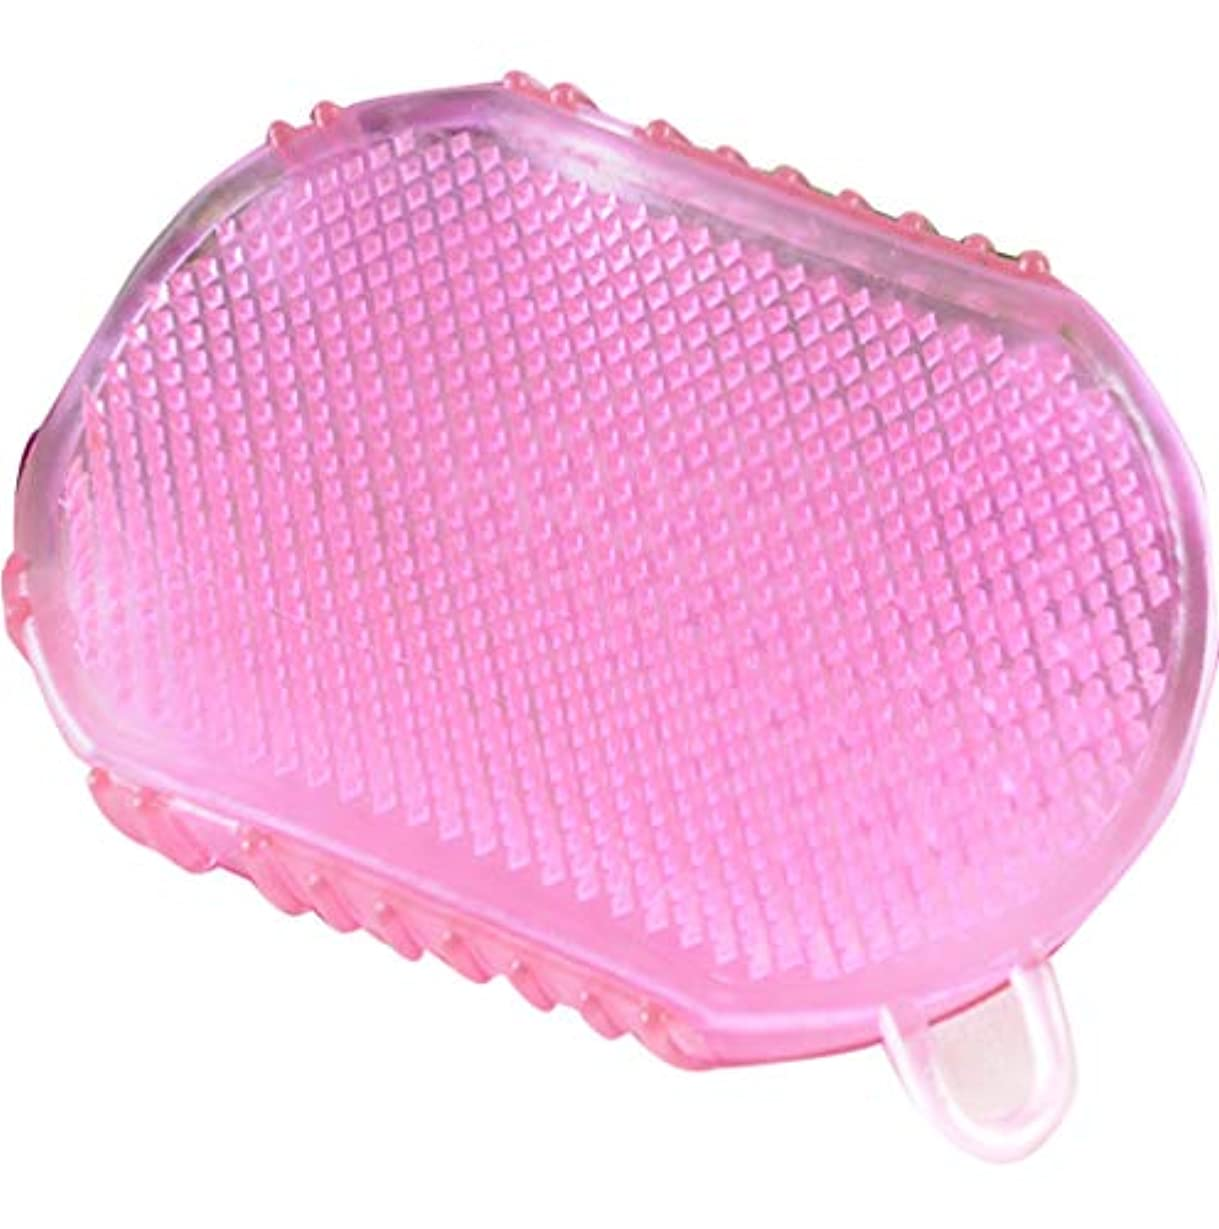 原理効率的カカドゥ1Pcs Soft Silicone Massage Scrub Gloves For Peeling Body Bath Brush Exfoliating Gloves Footbrush for the Bath...